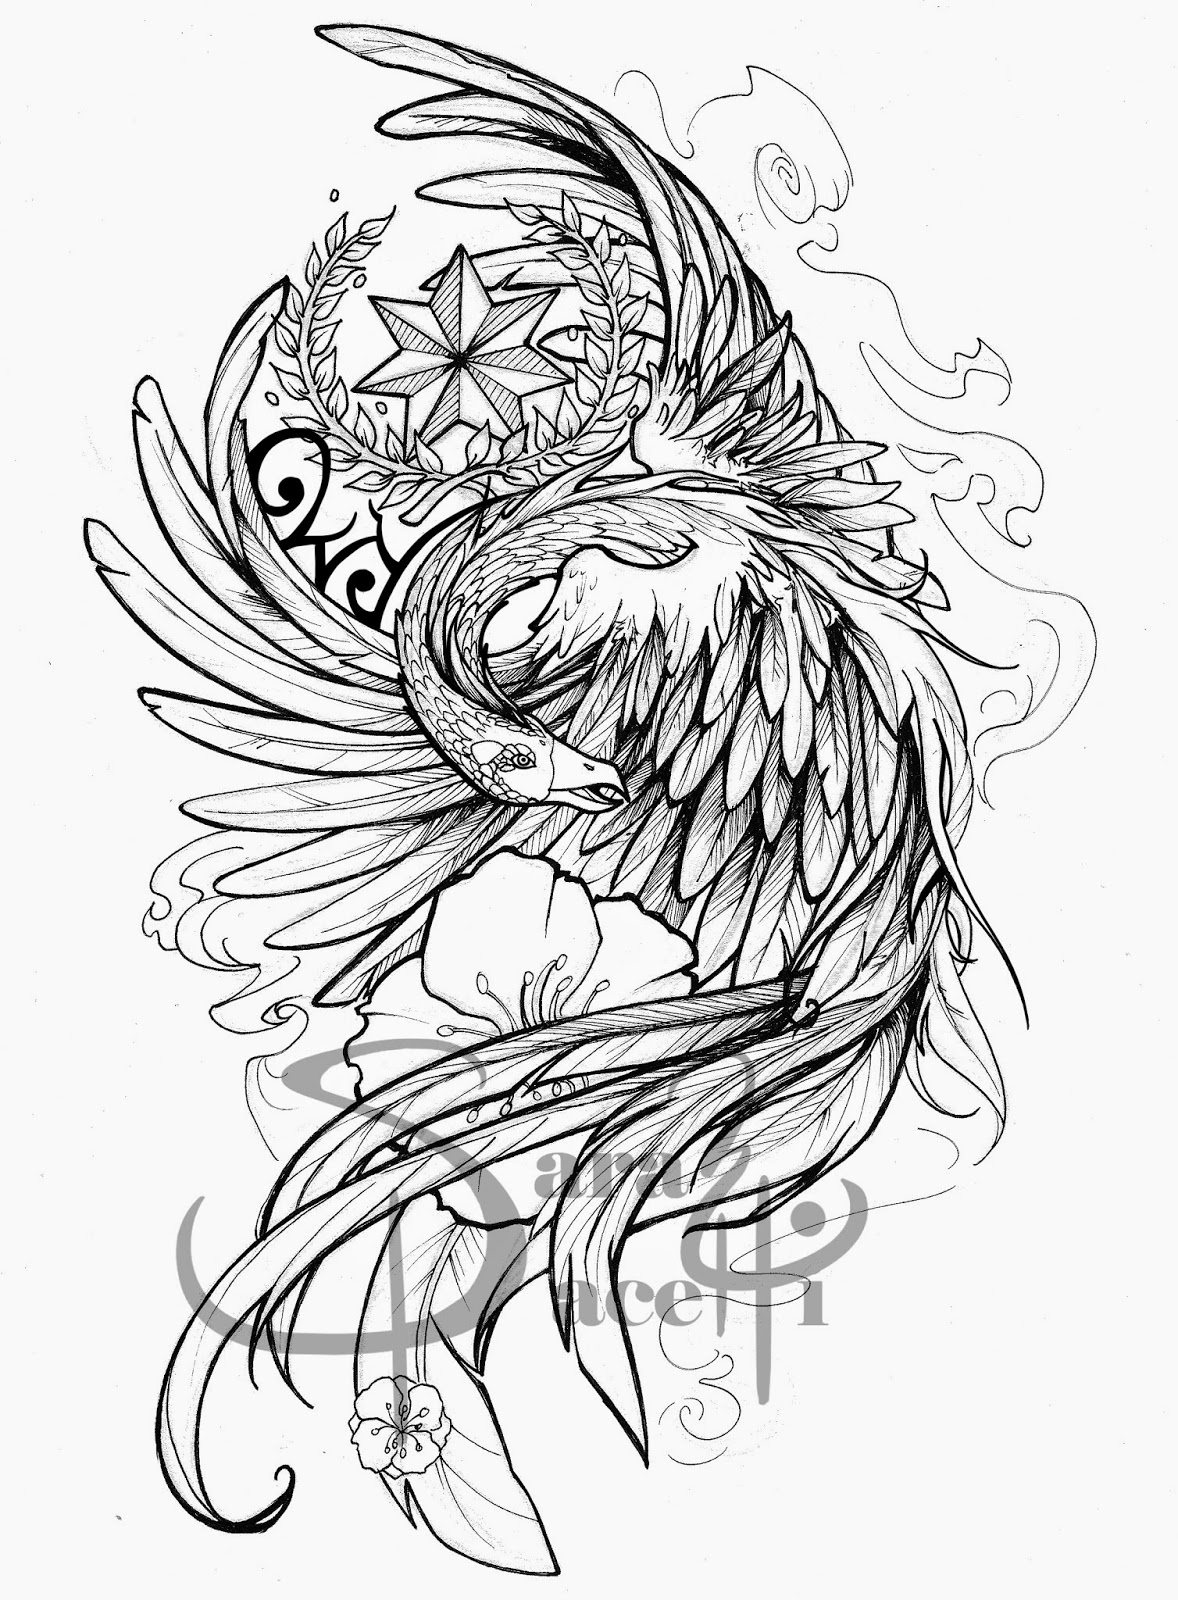 Tattoo Sleeve Stencils: Half Sleeve Tattoo Drawing Designs At GetDrawings